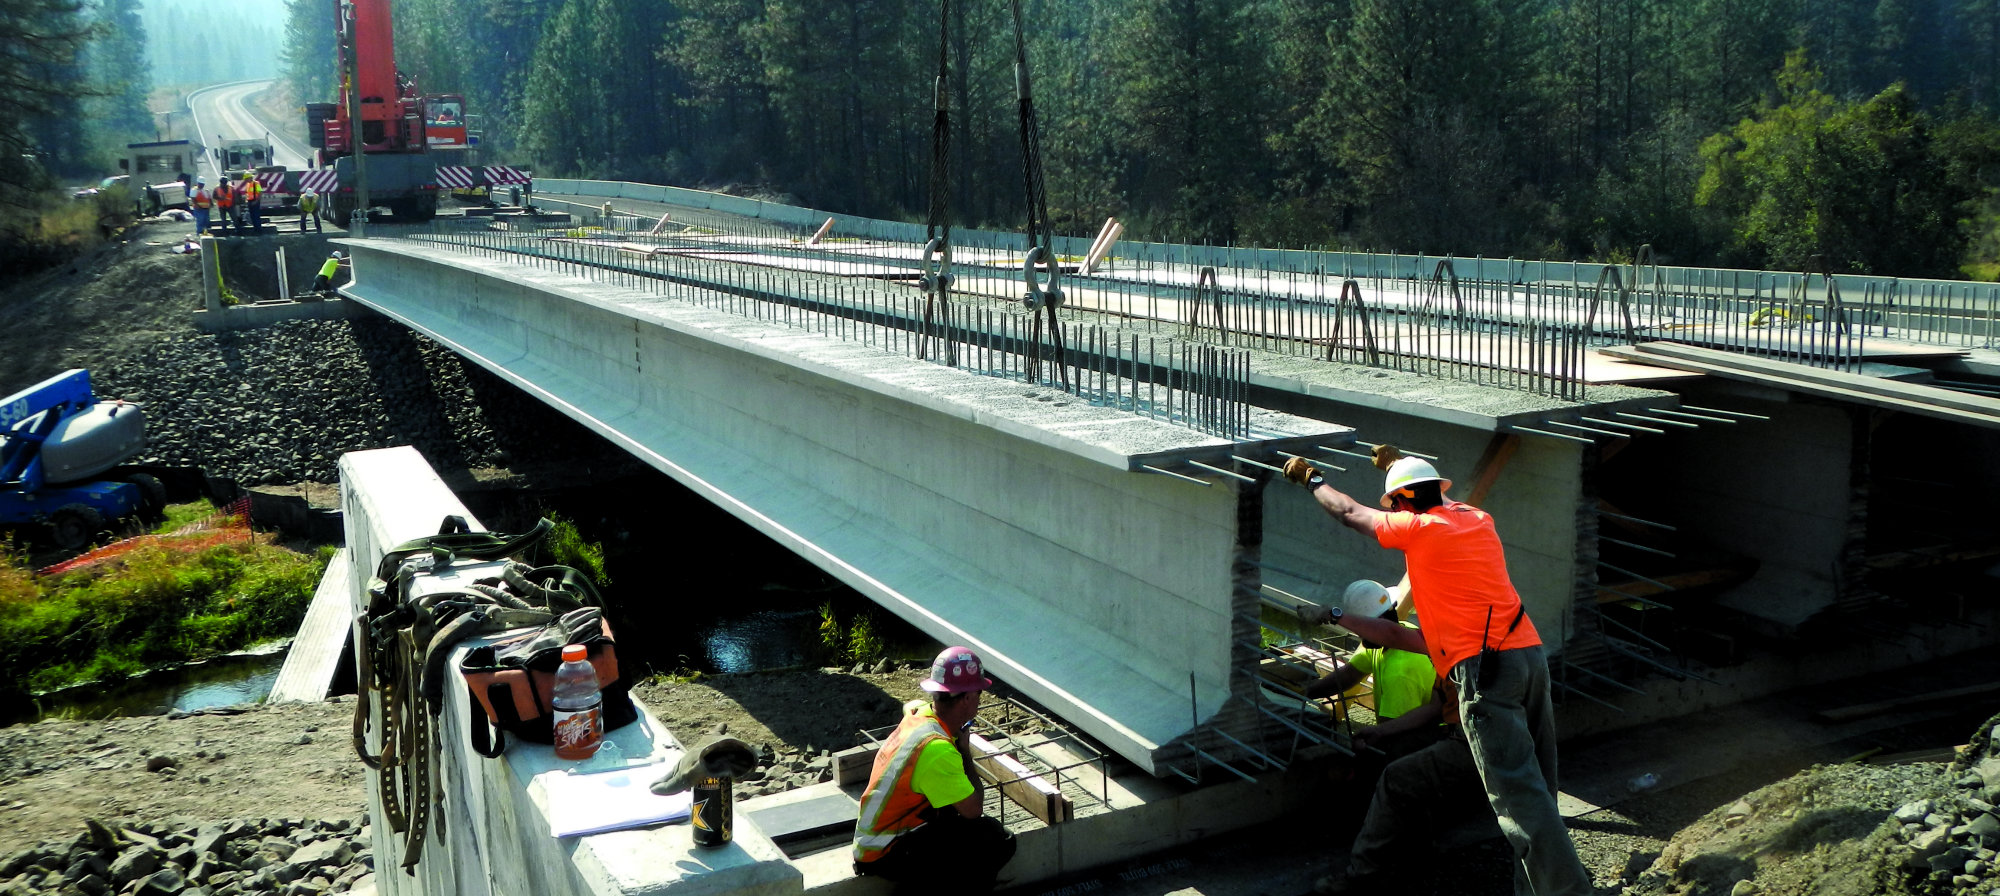 Precast Bridges 136 Foot Super Girder Used On Bridge Project Concrete